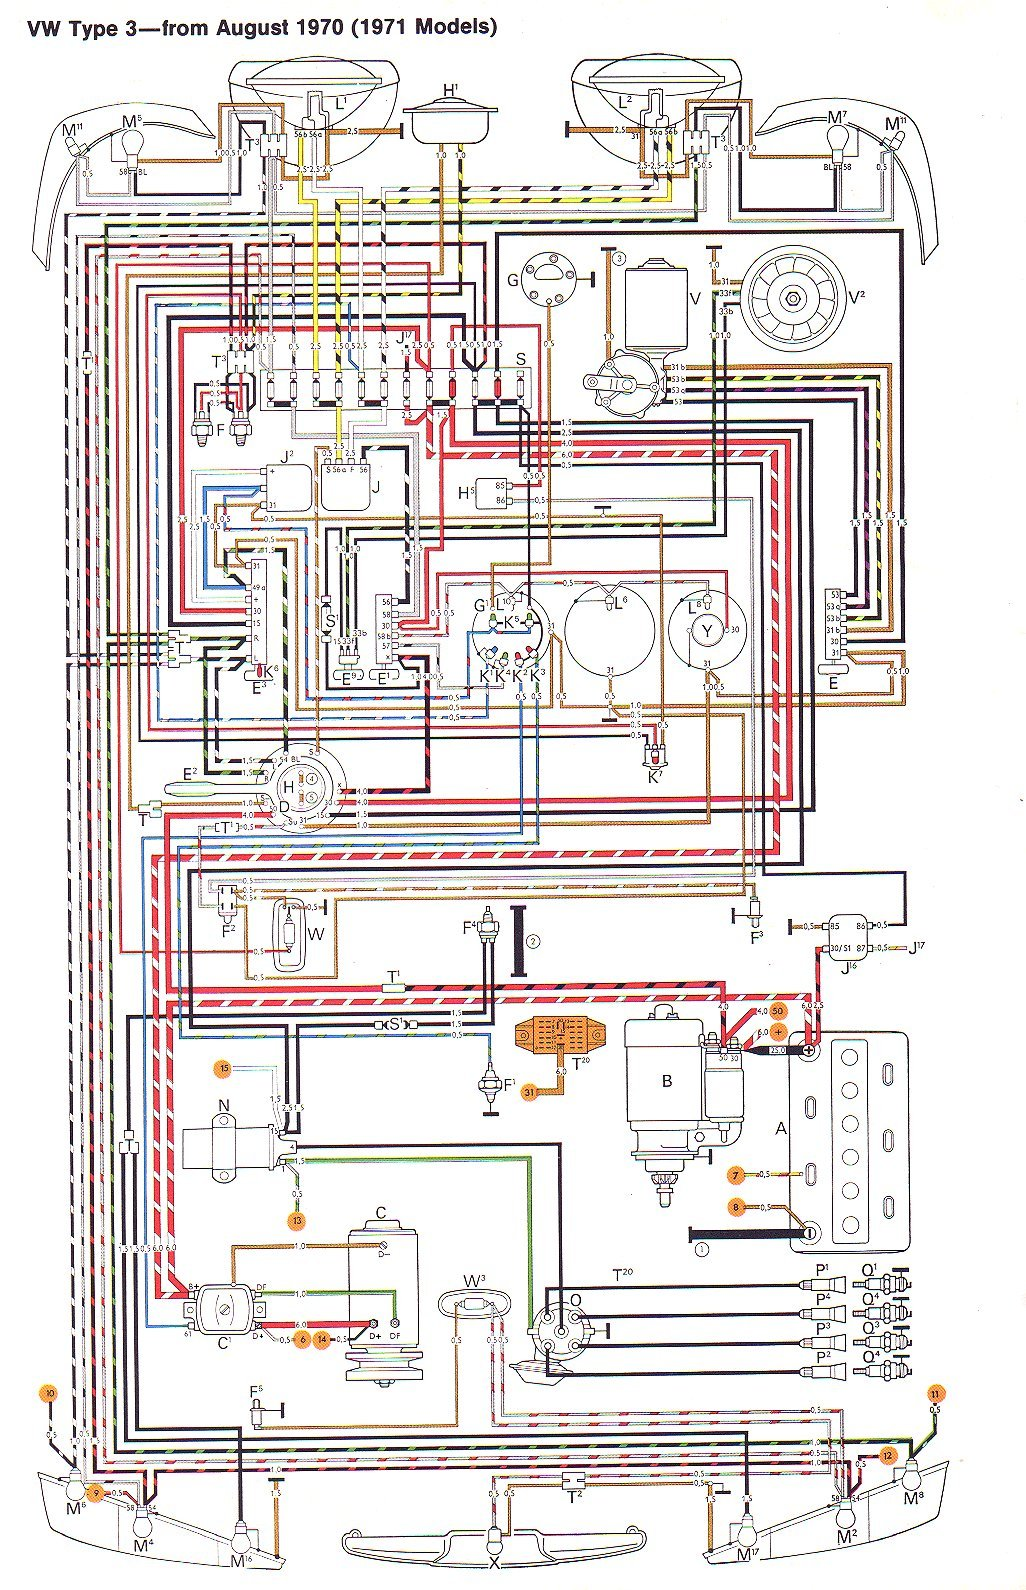 1972 vw beetle wiring diagram wiring diagram for 1971 vw beetle the wiring diagram volkswagen wiring diagrams volkswagen wiring diagrams for